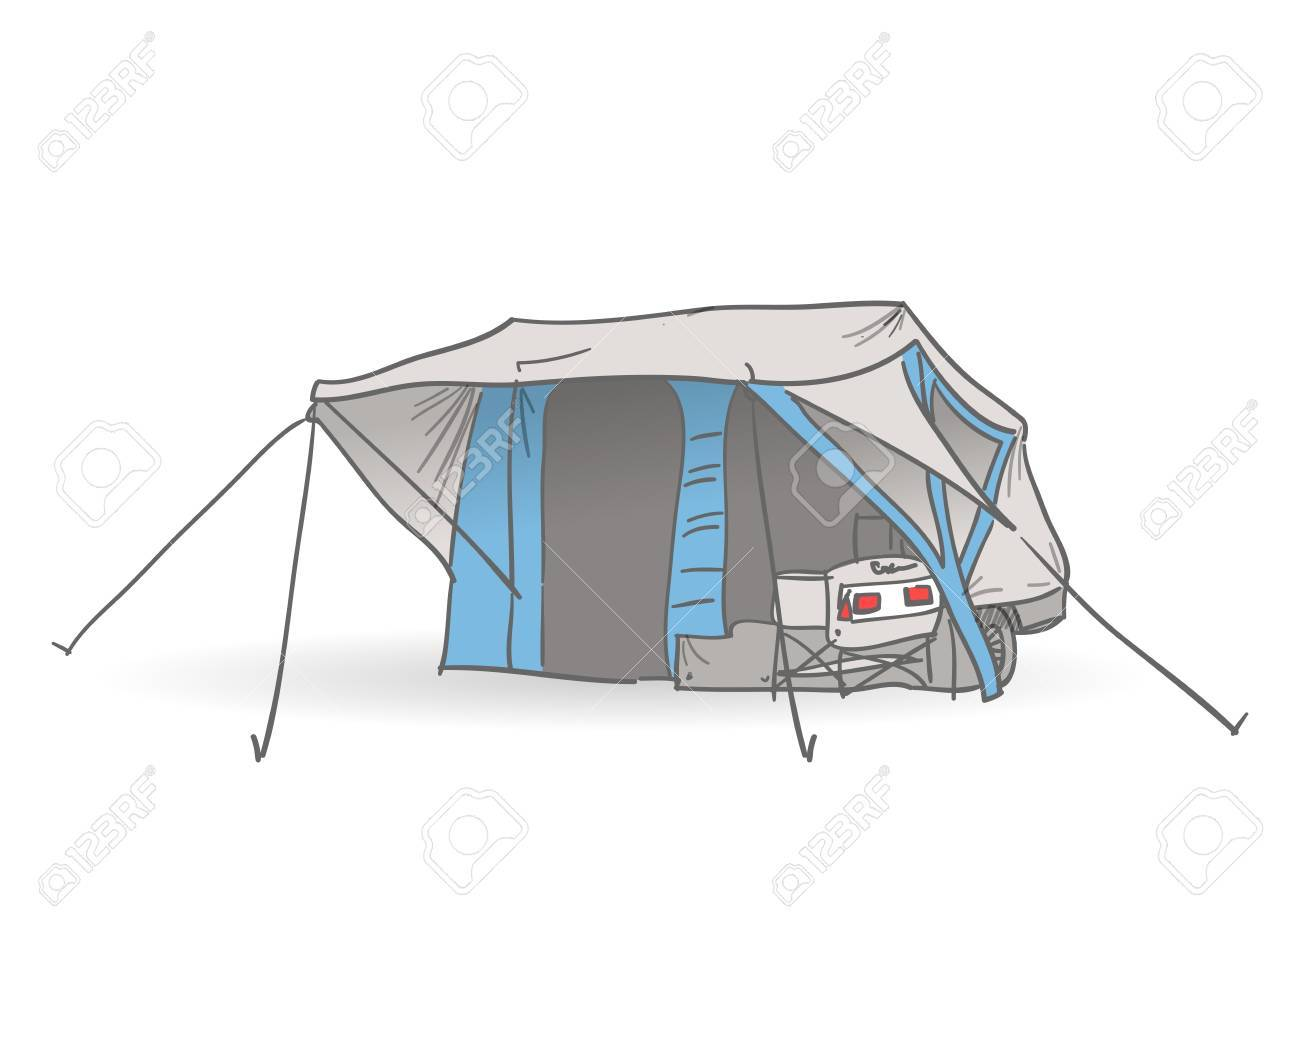 Camping Tent Stock Vector - 15782590